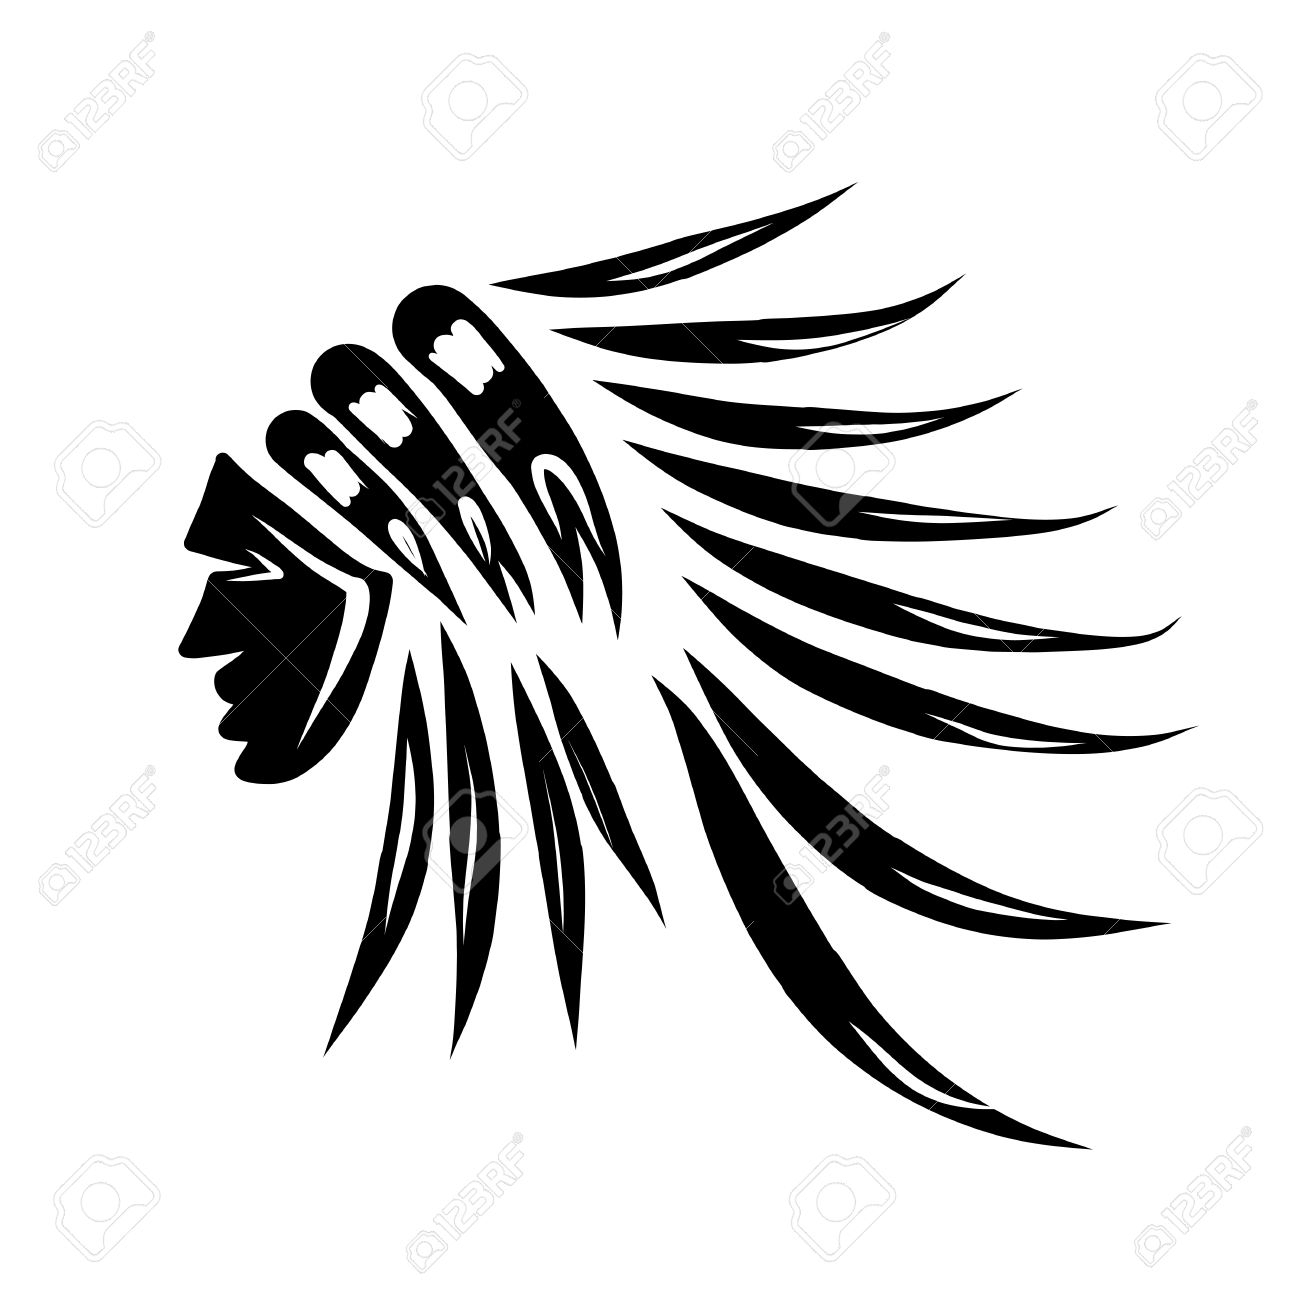 Head of indian chief, black silhouette for your design.